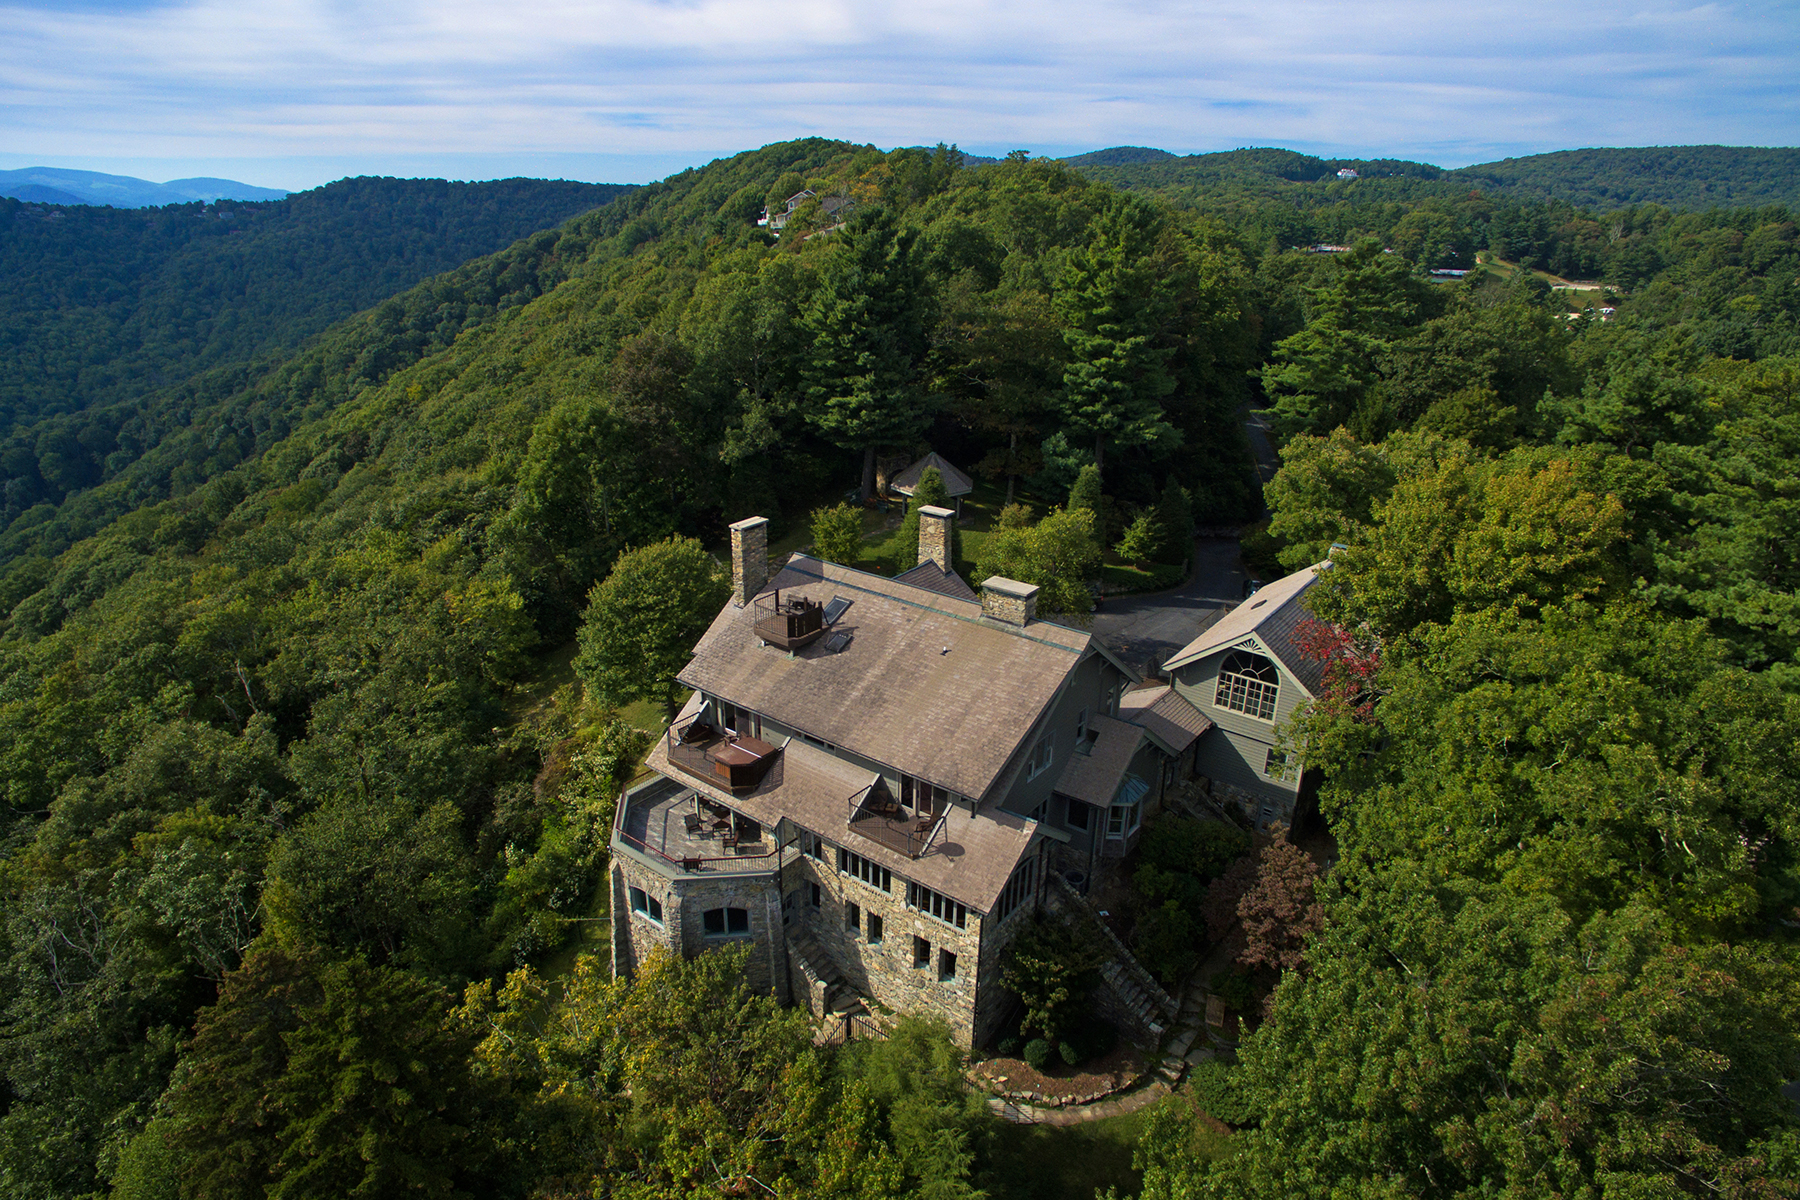 Single Family Home for Sale at Blowing Rock - Mayview Park 1245 Laurel Lane Ln Blowing Rock, North Carolina, 28605 United States